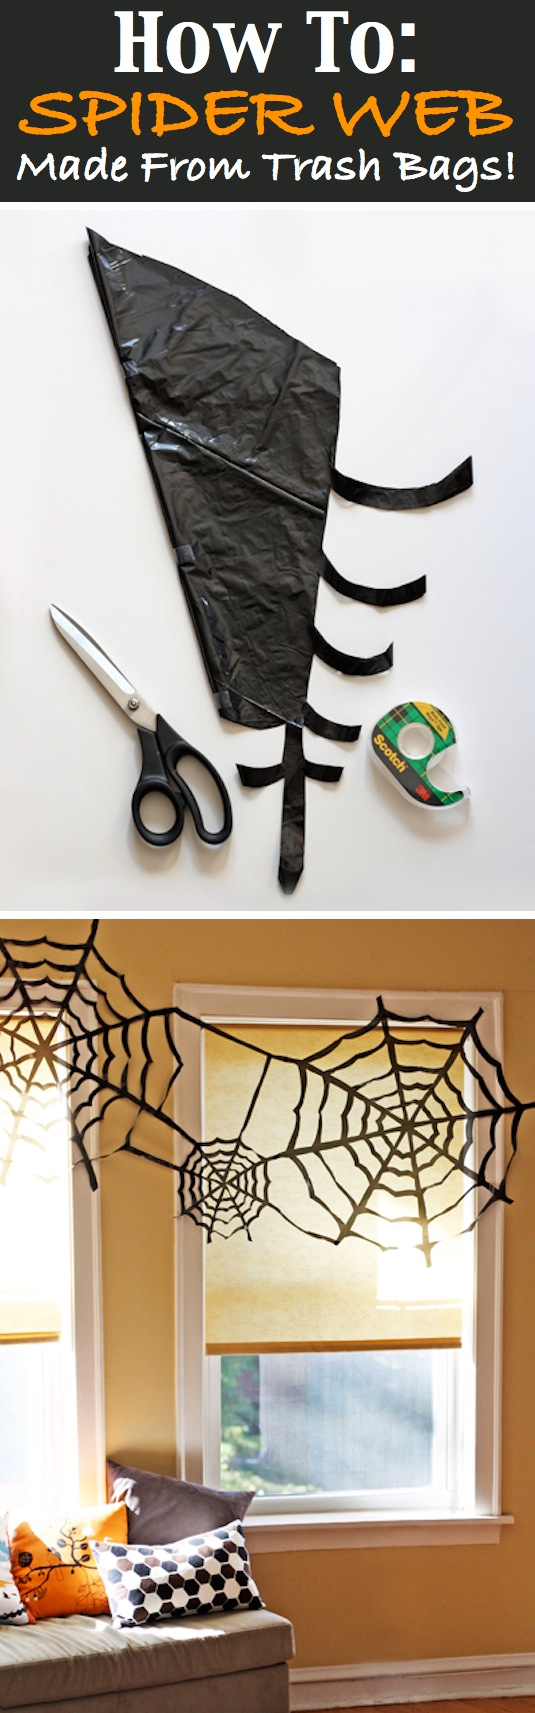 16+ Easy But Awesome Homemade Halloween Decorations (With Photo ...